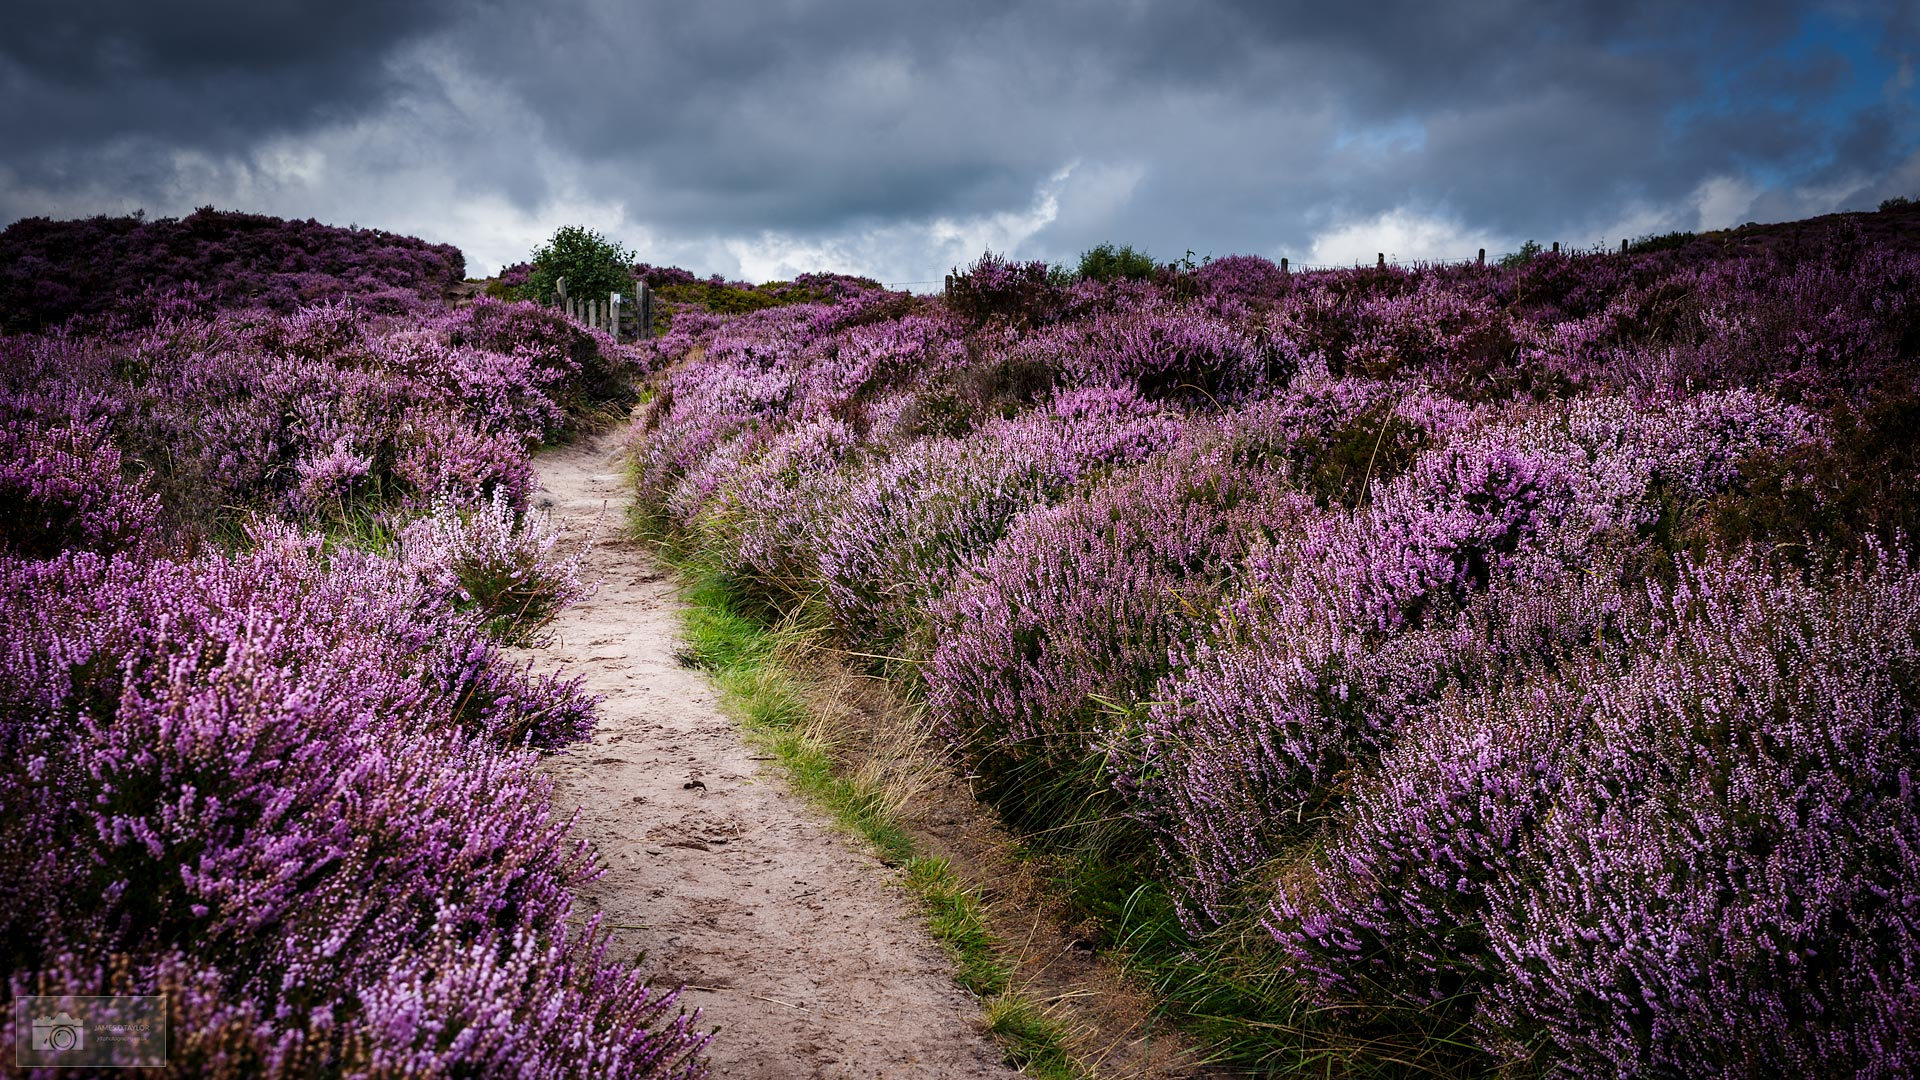 jdtphotography.co.uk footpath in purple heather